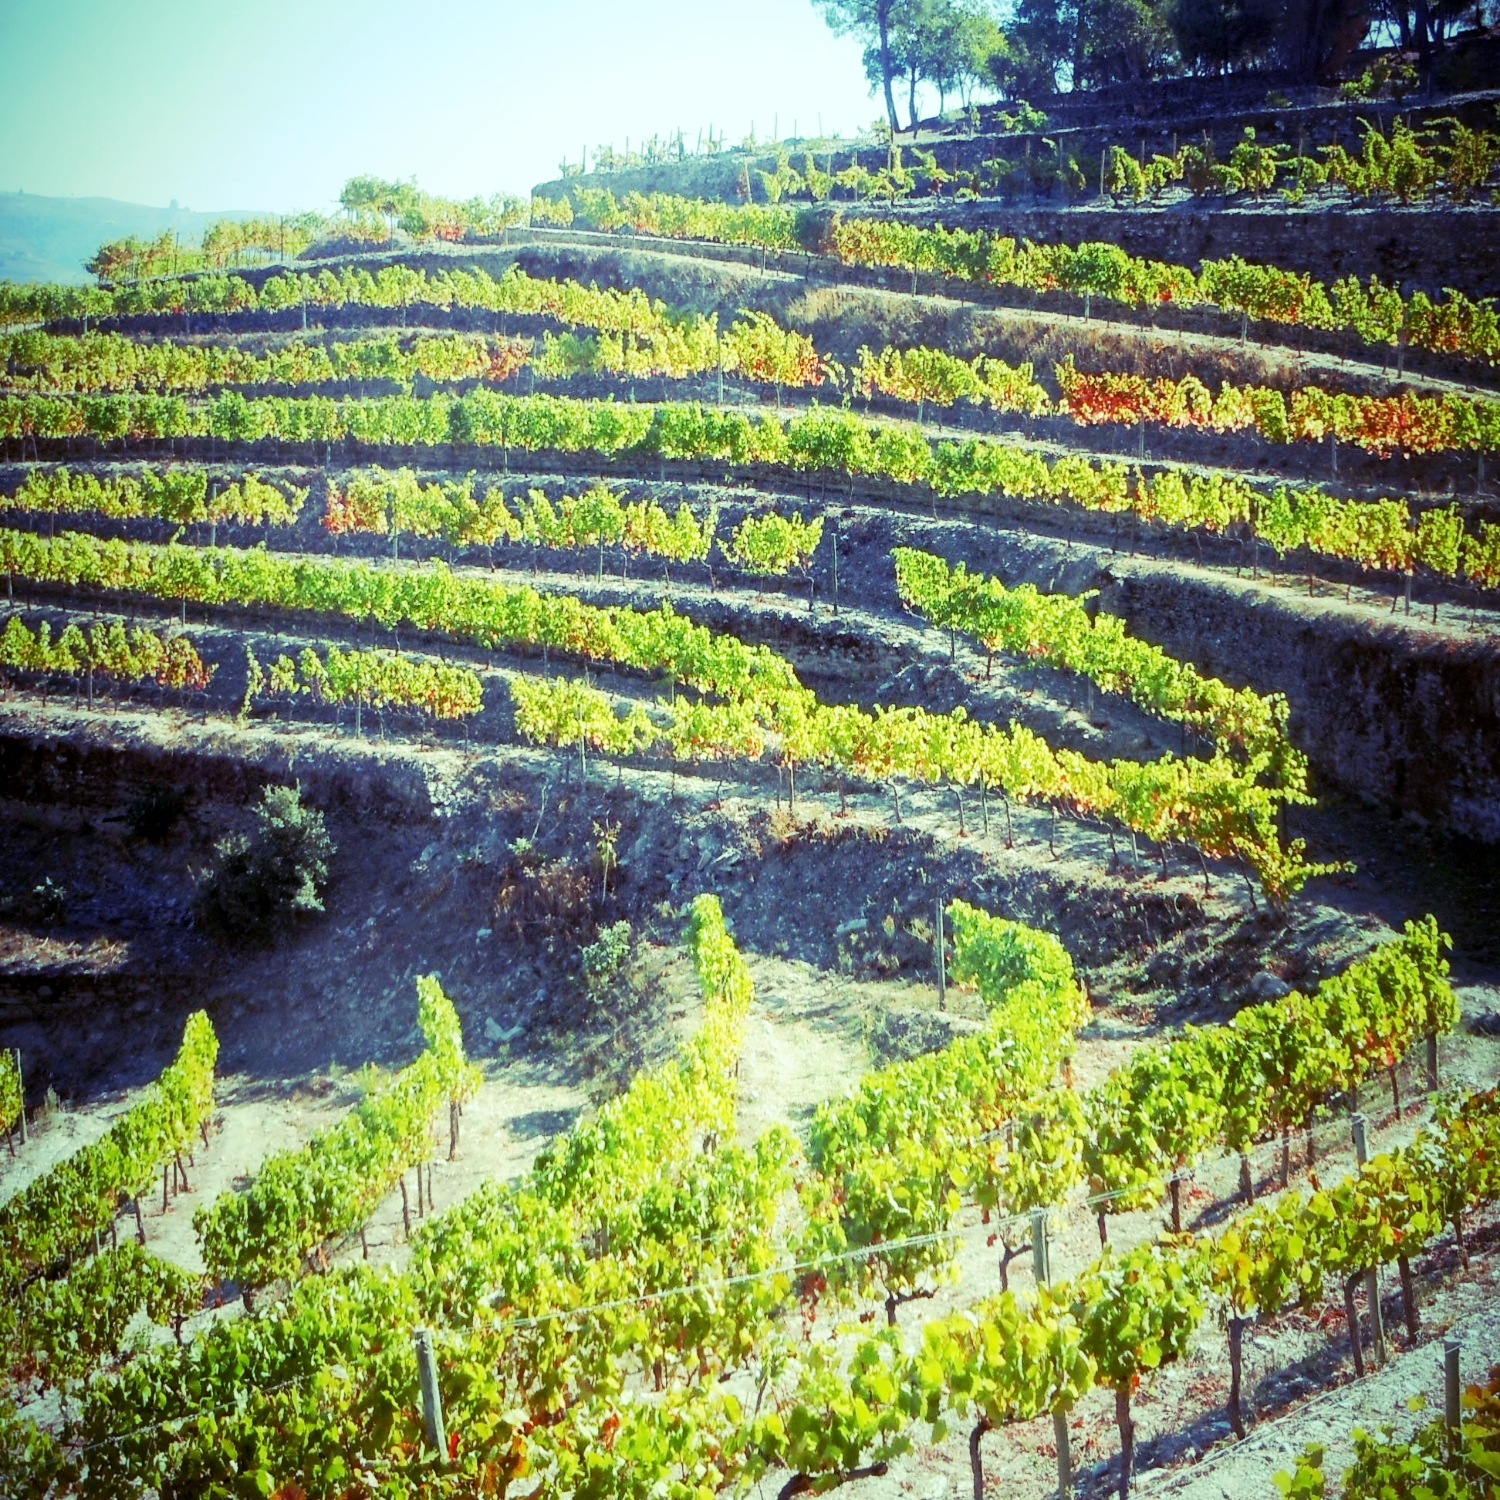 Douro Valley terraces - This is the world's oldest demarcated wine region established in 1756. The terraces were originally created by human hands on the banks of the Douro river.